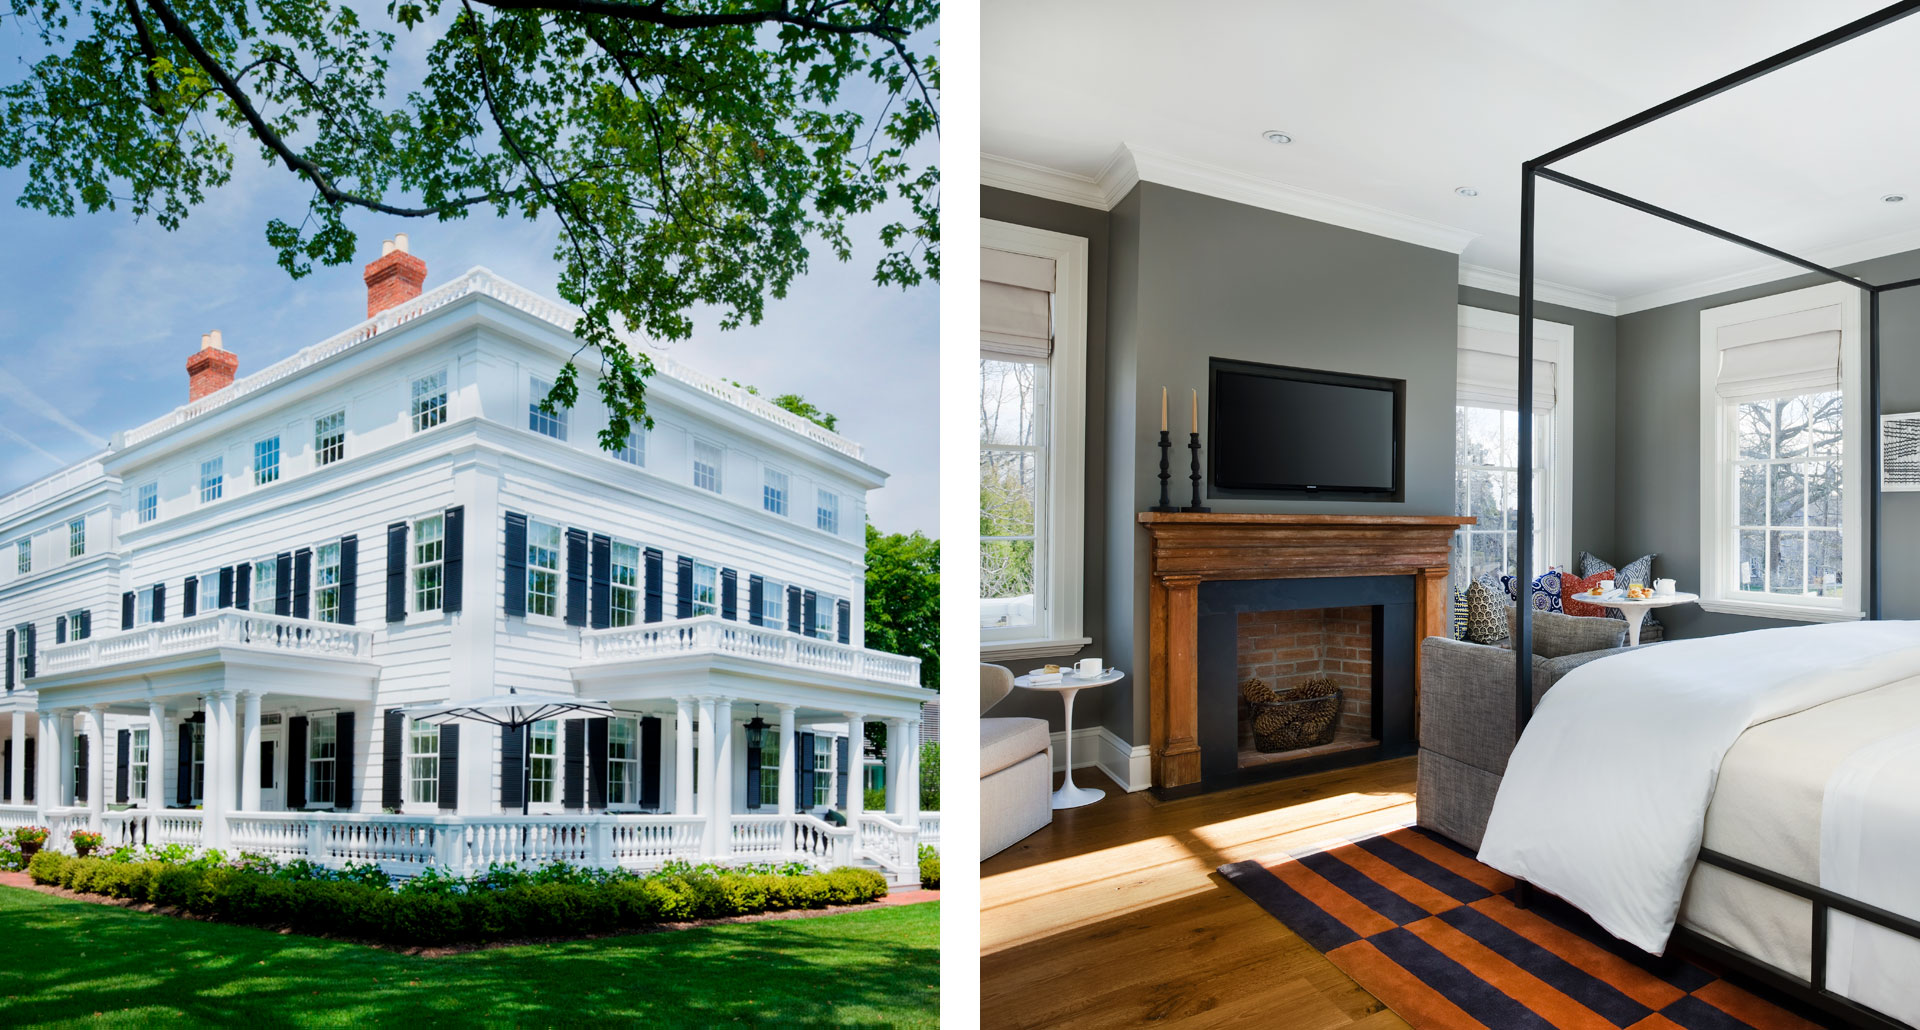 Topping Rose House - boutique hotel in Bridgehampton